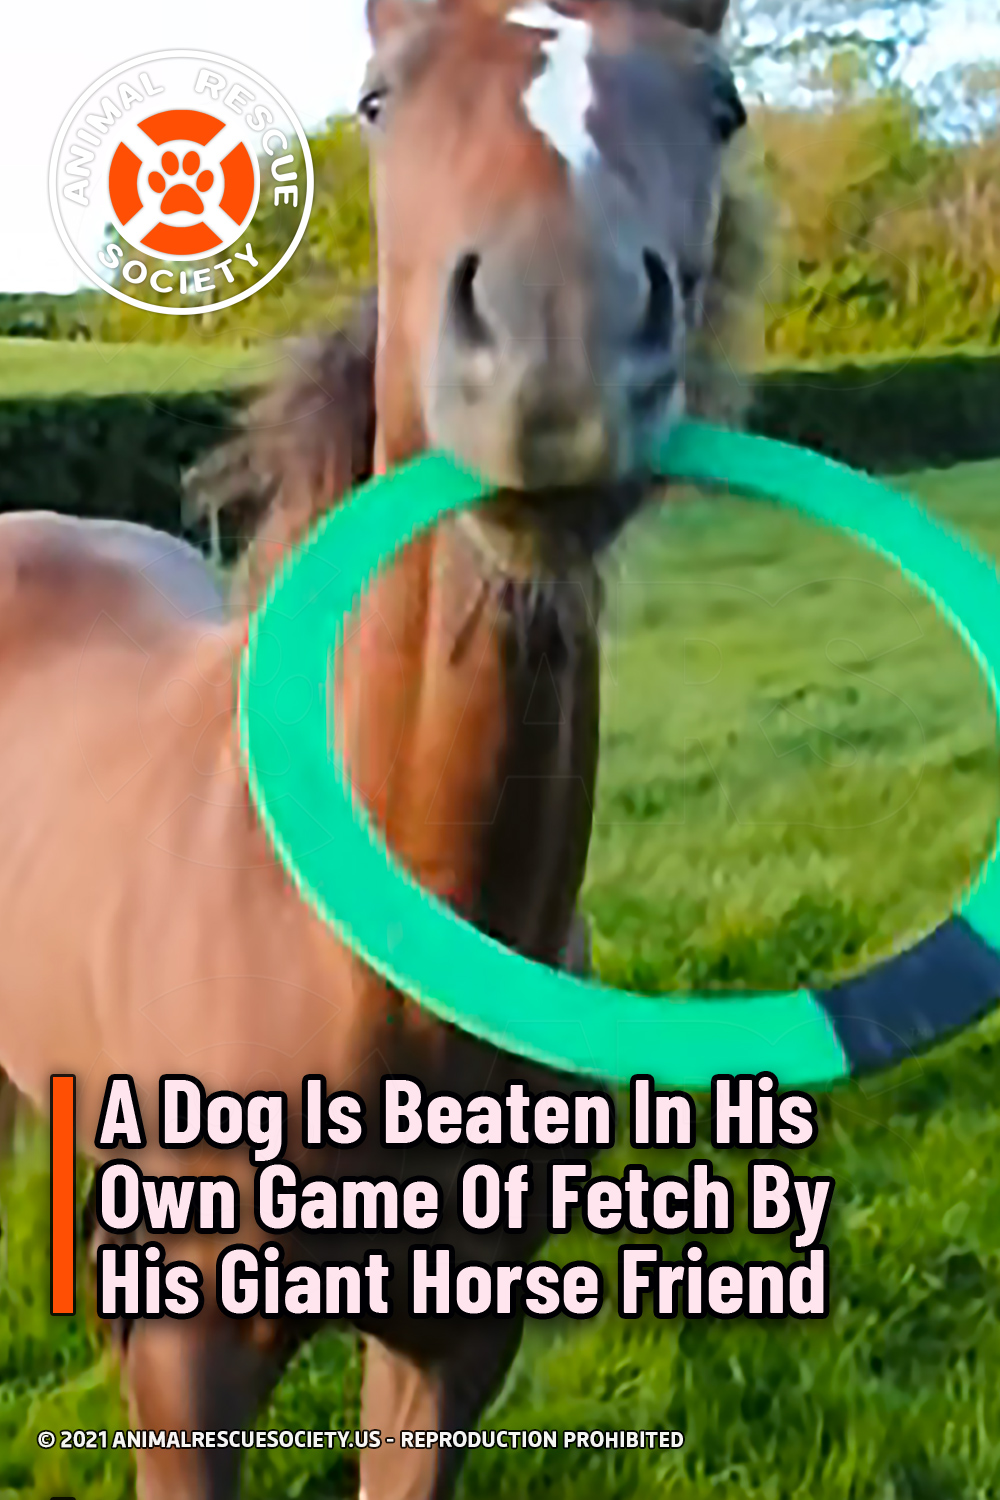 A Dog Is Beaten In His Own Game Of Fetch By His Giant Horse Friend